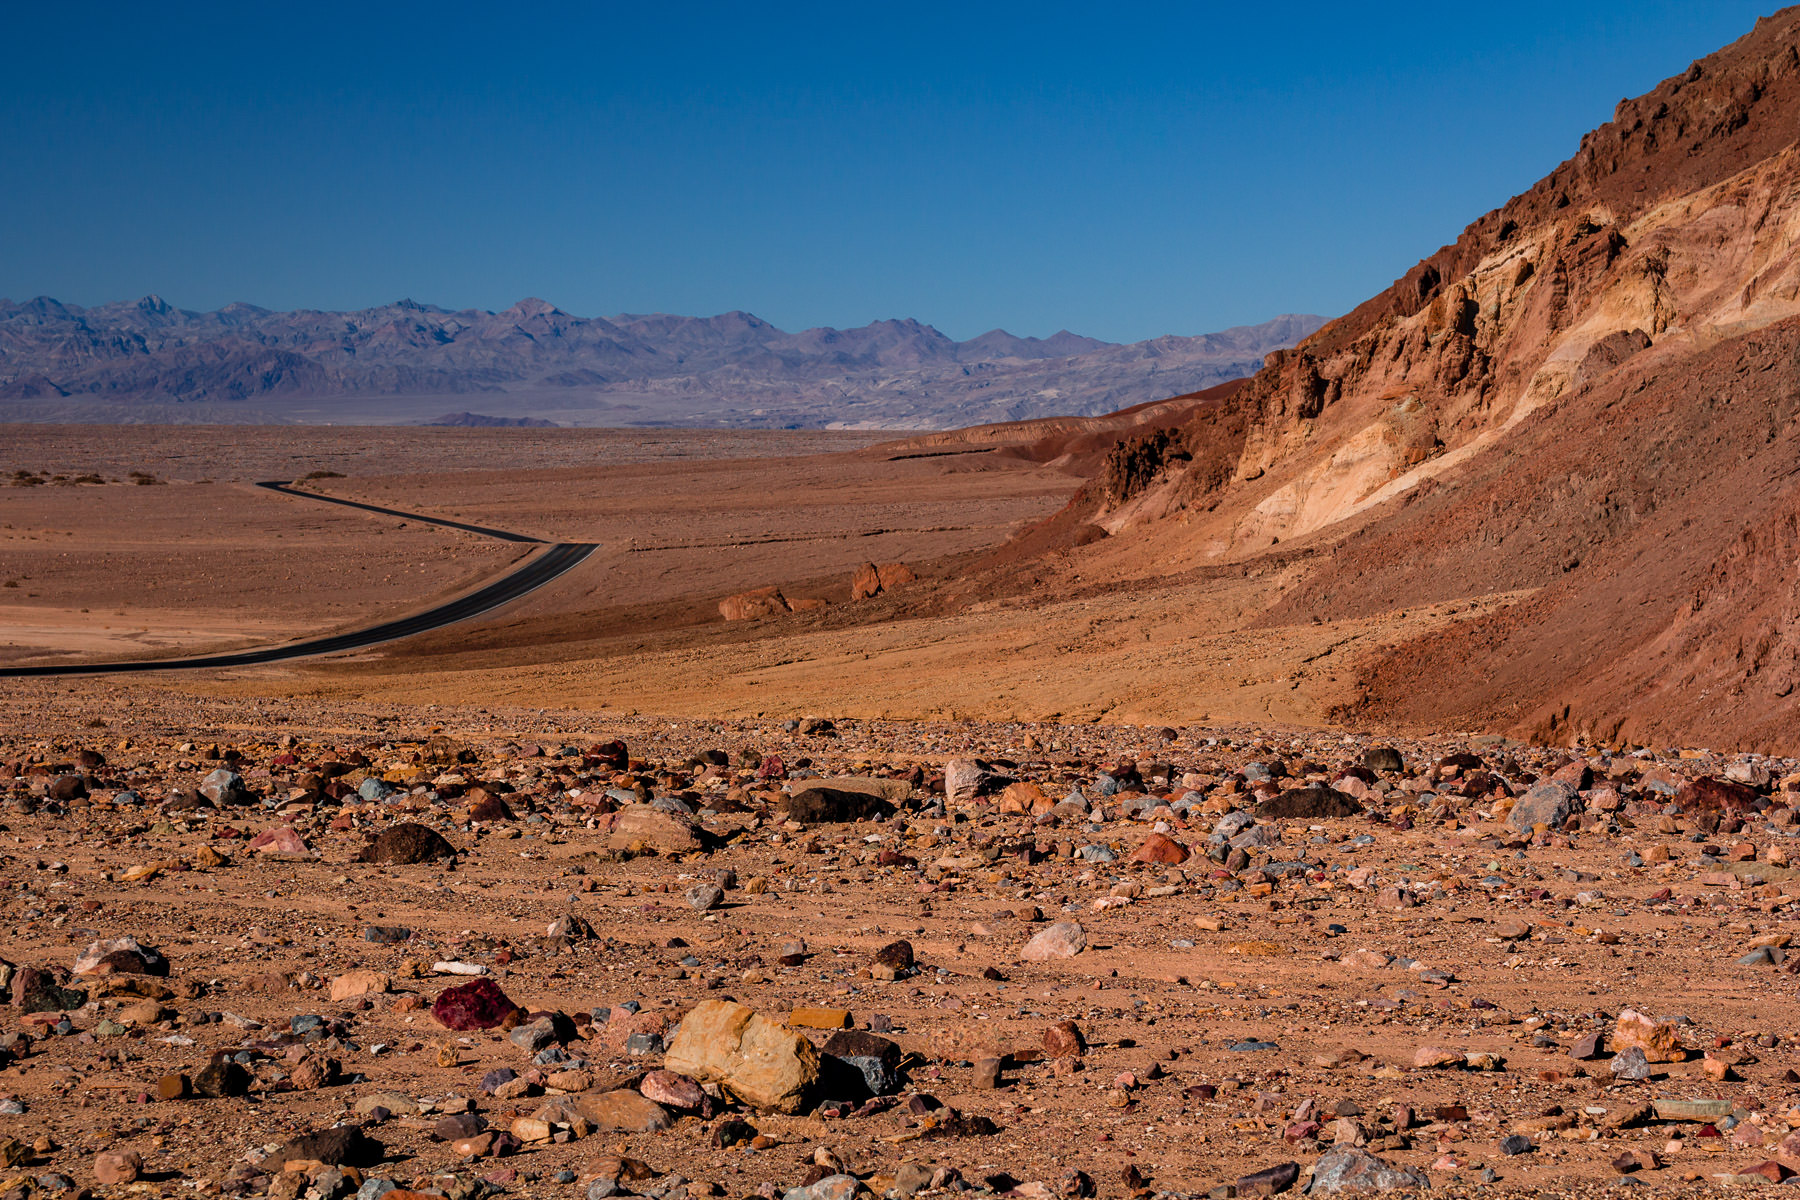 Multi-colored rocks lie on the arid desert ground at California's Death Valley National Park.